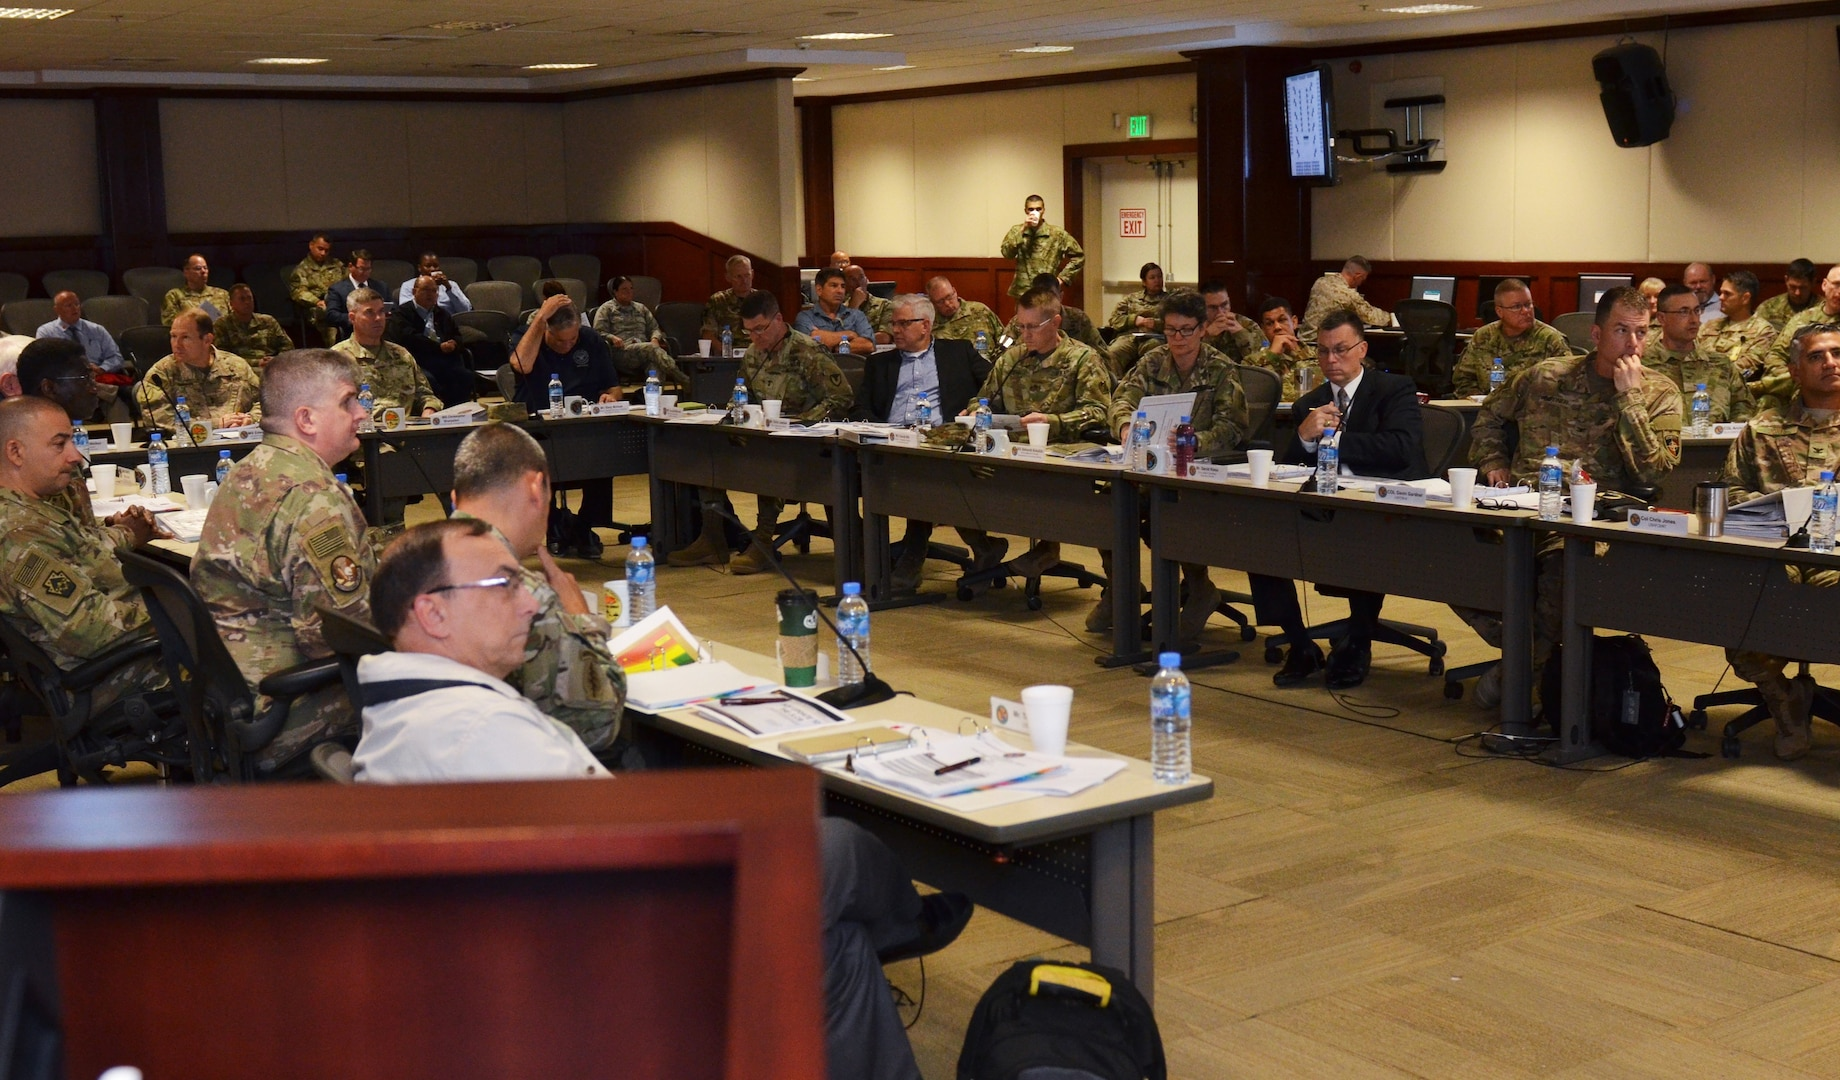 Logistics and Engineering professionals throughout the Department of Defense discuss logistics at the 2018 Joint Logistics Coordination Board at Al Udeid Air Base, Qatar 9 May, 2018. The JLCB conducts planning sessions to better facilitate support to military operations in CENTCOM's area of responsibility.